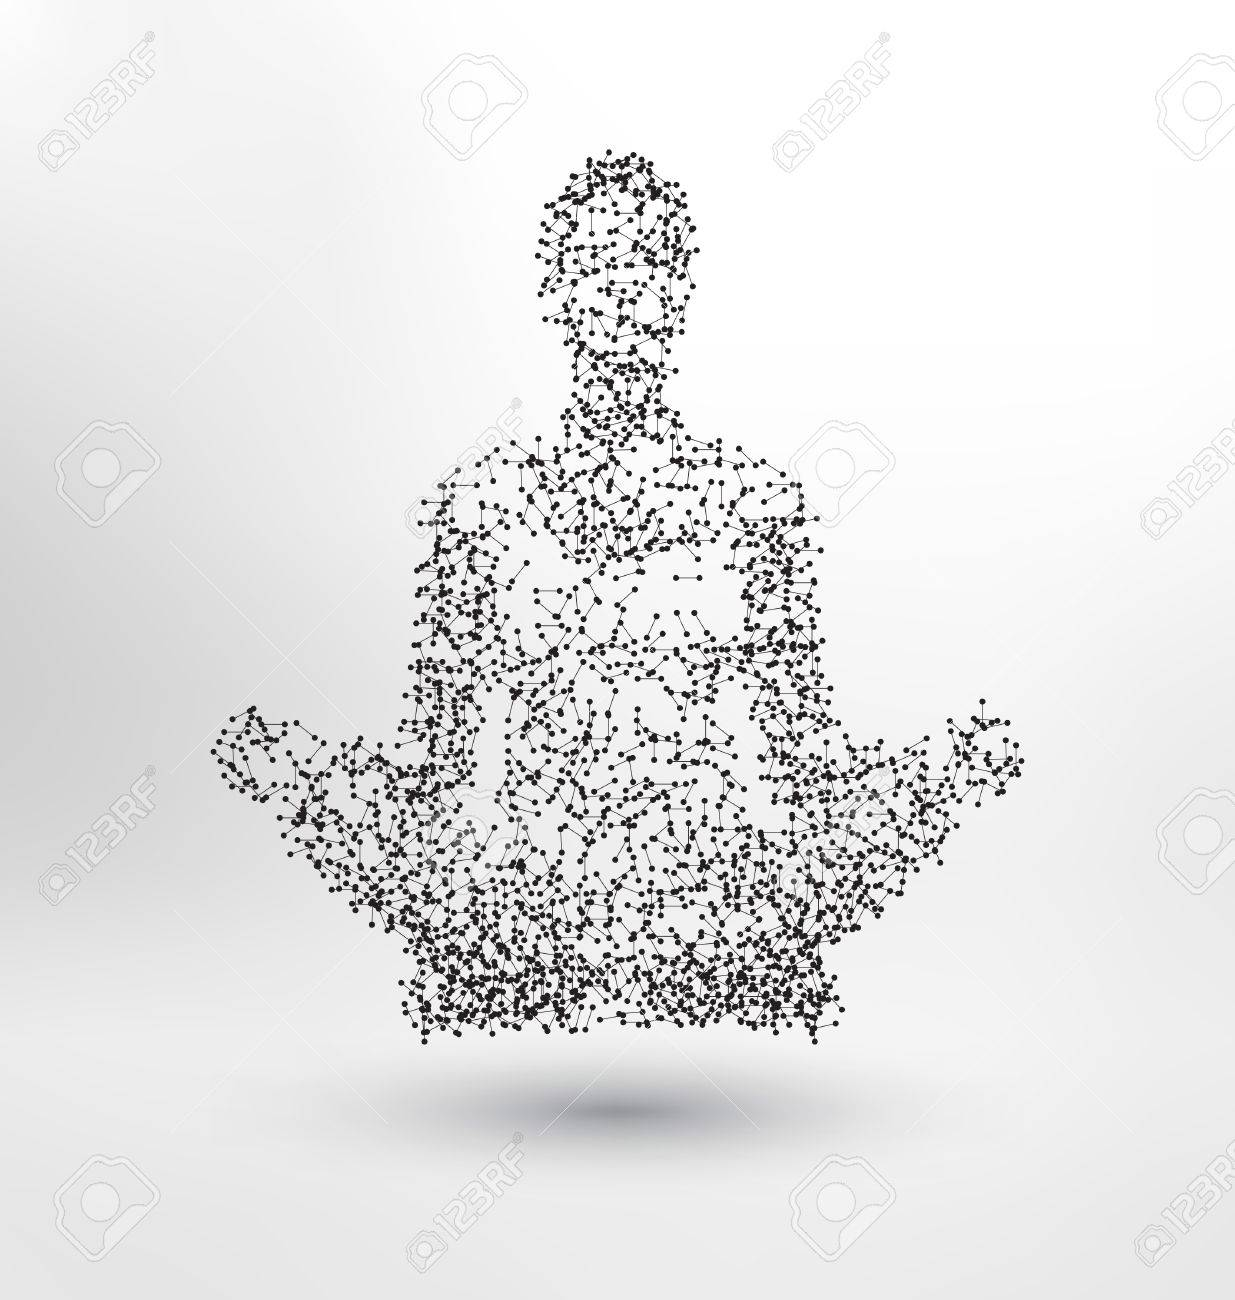 Abstract Molecule based human figure concept - Illustration of a human body in lotus pose - meditating person - 61246723